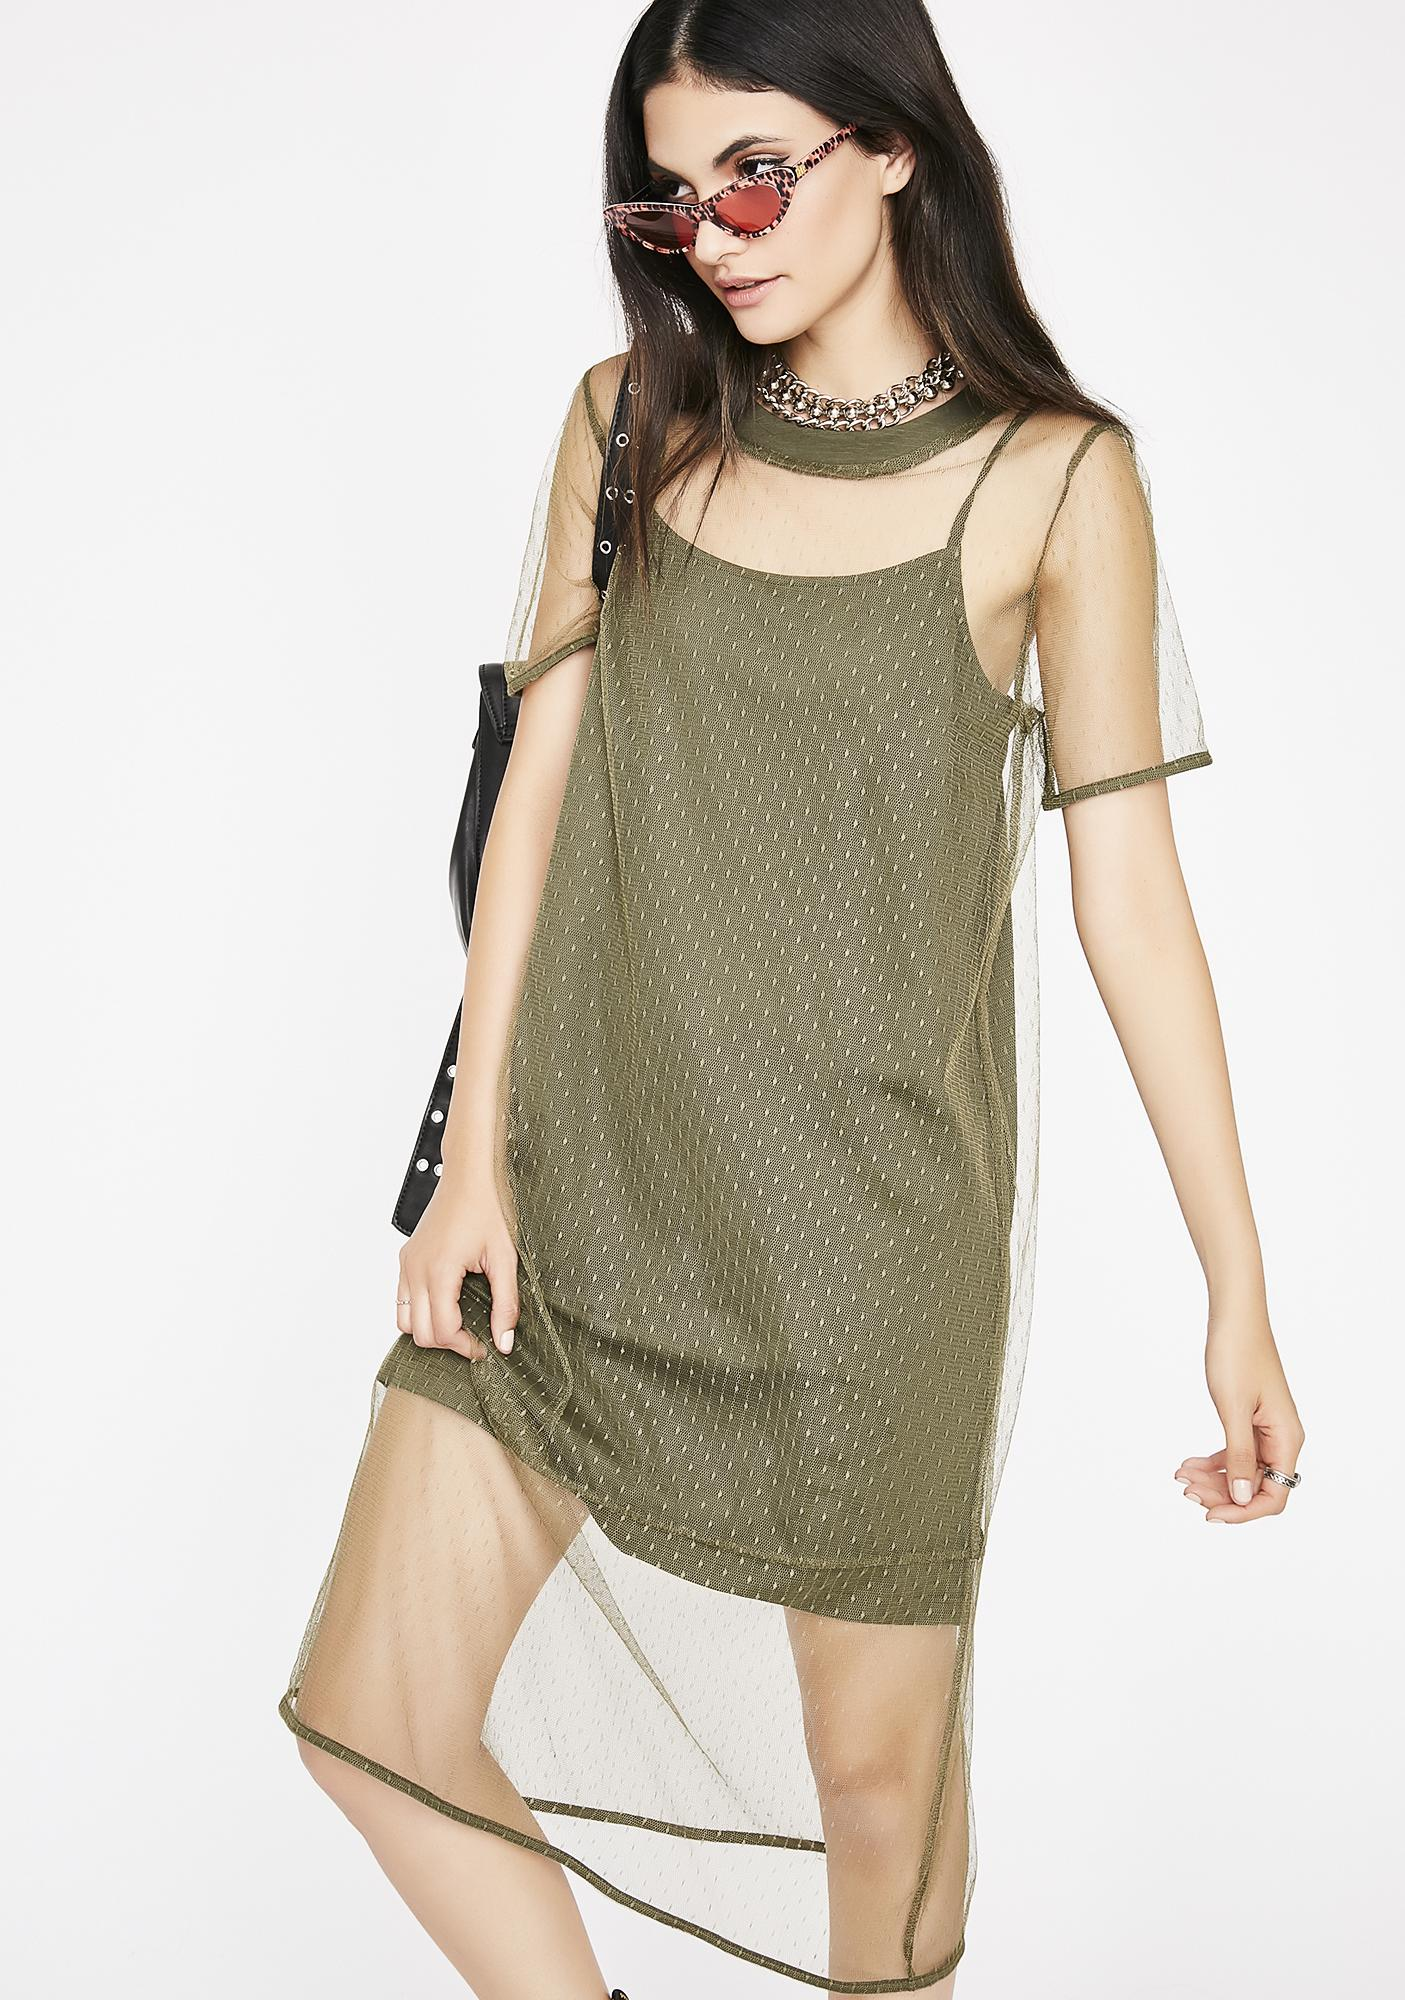 Intentionally Rude Mesh Dress by Very J